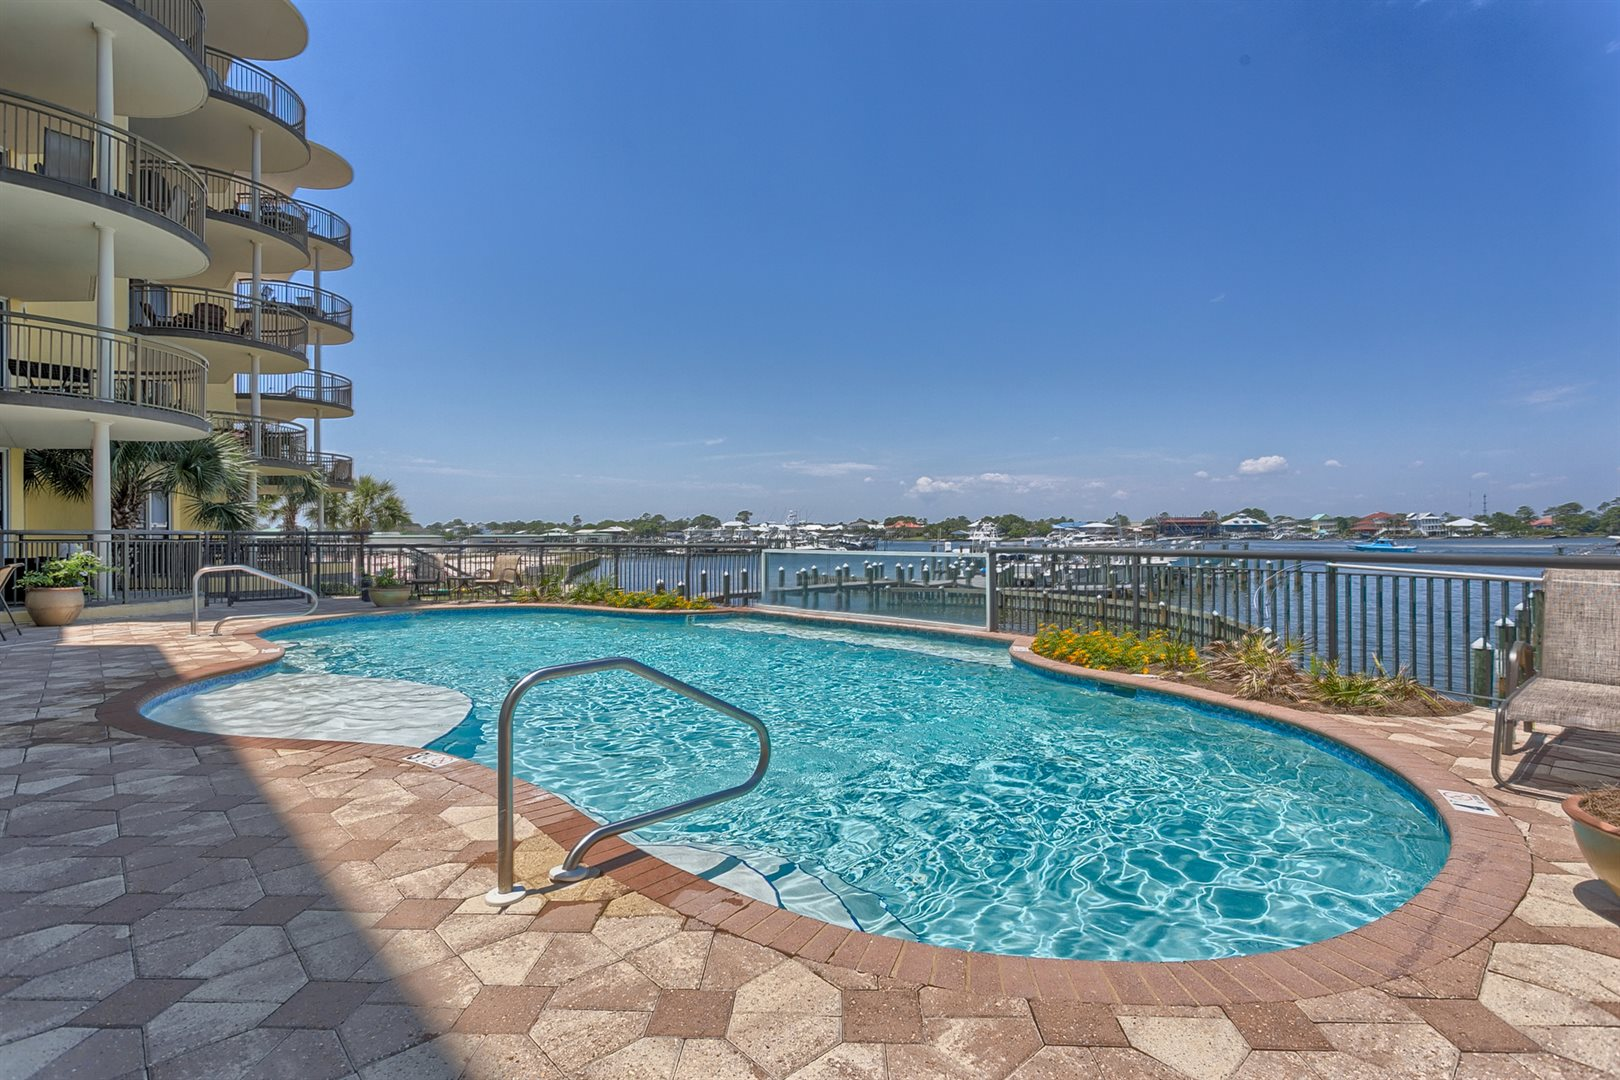 Porto Del Sol Condos in Orange Beach